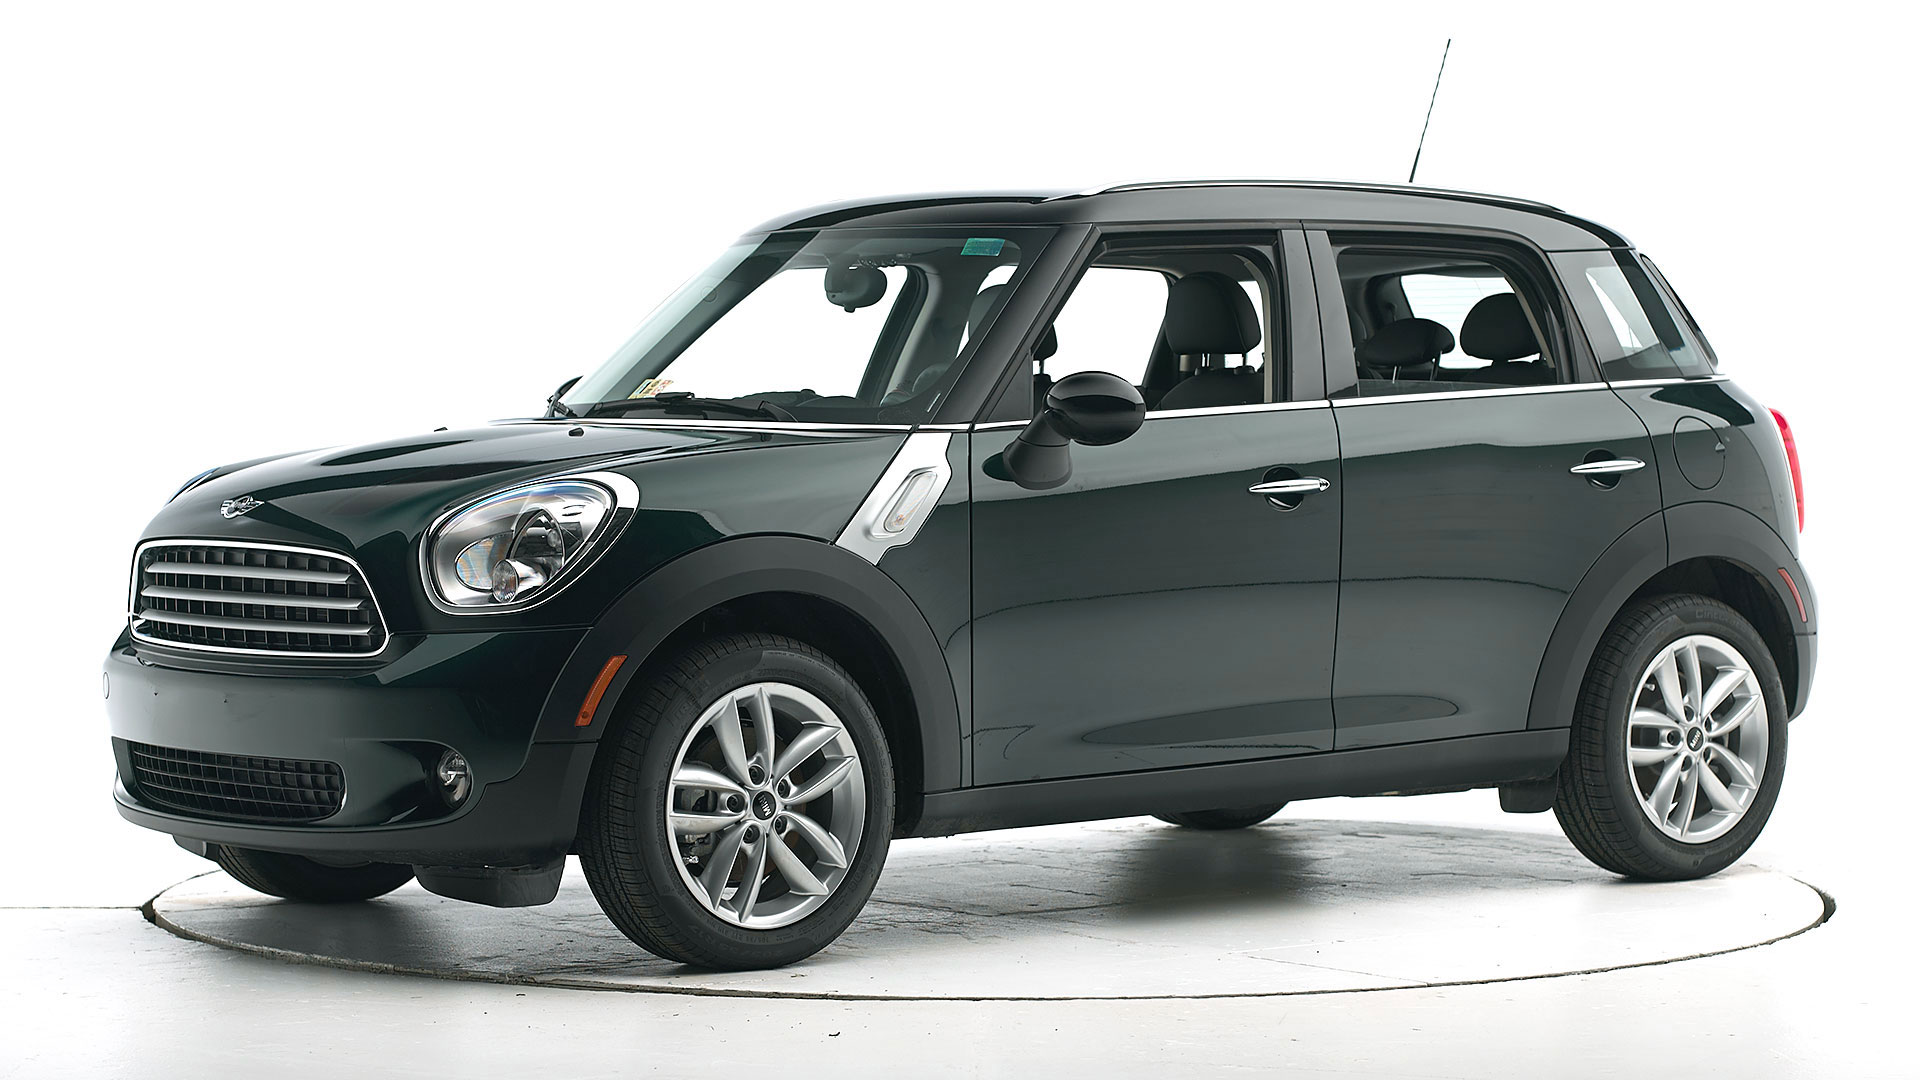 2015 Mini Countryman 4-door hatchback